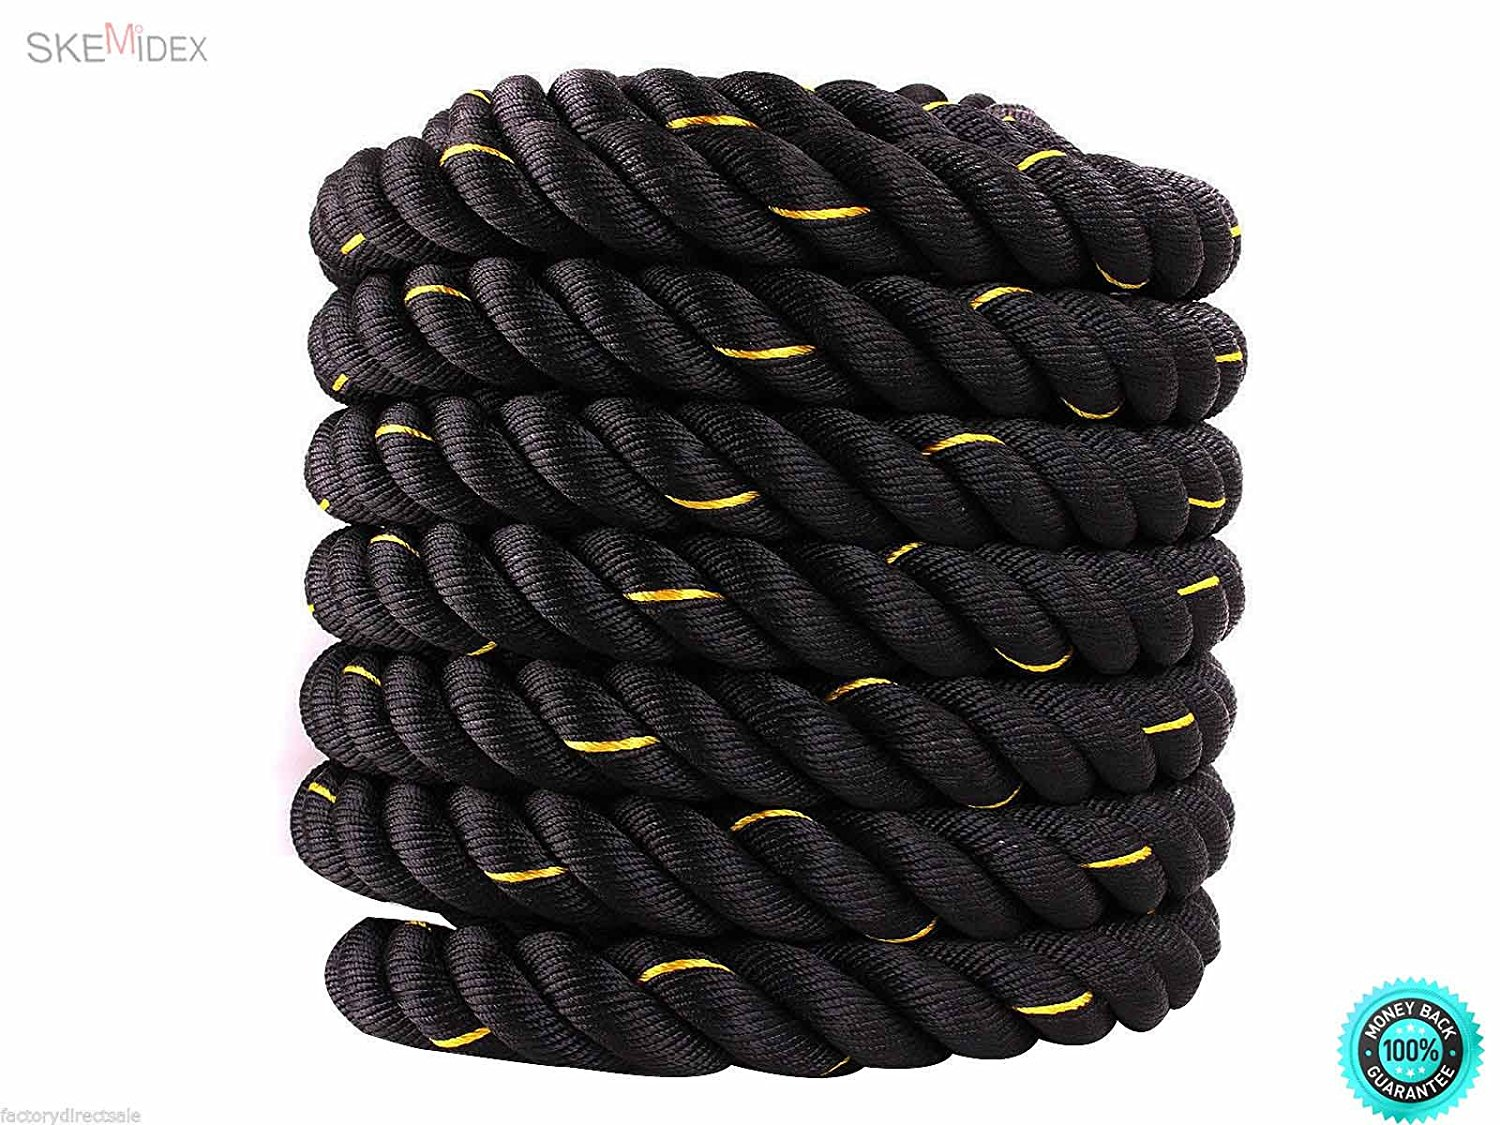 "SKEMiDEX--- 1.5"" Poly Dacron 30' Battle Rope Exercise Workout Strength Undulation This leads to higher cardiac output and oxygen consumption. Our rope will hard to fray, break or come loose."